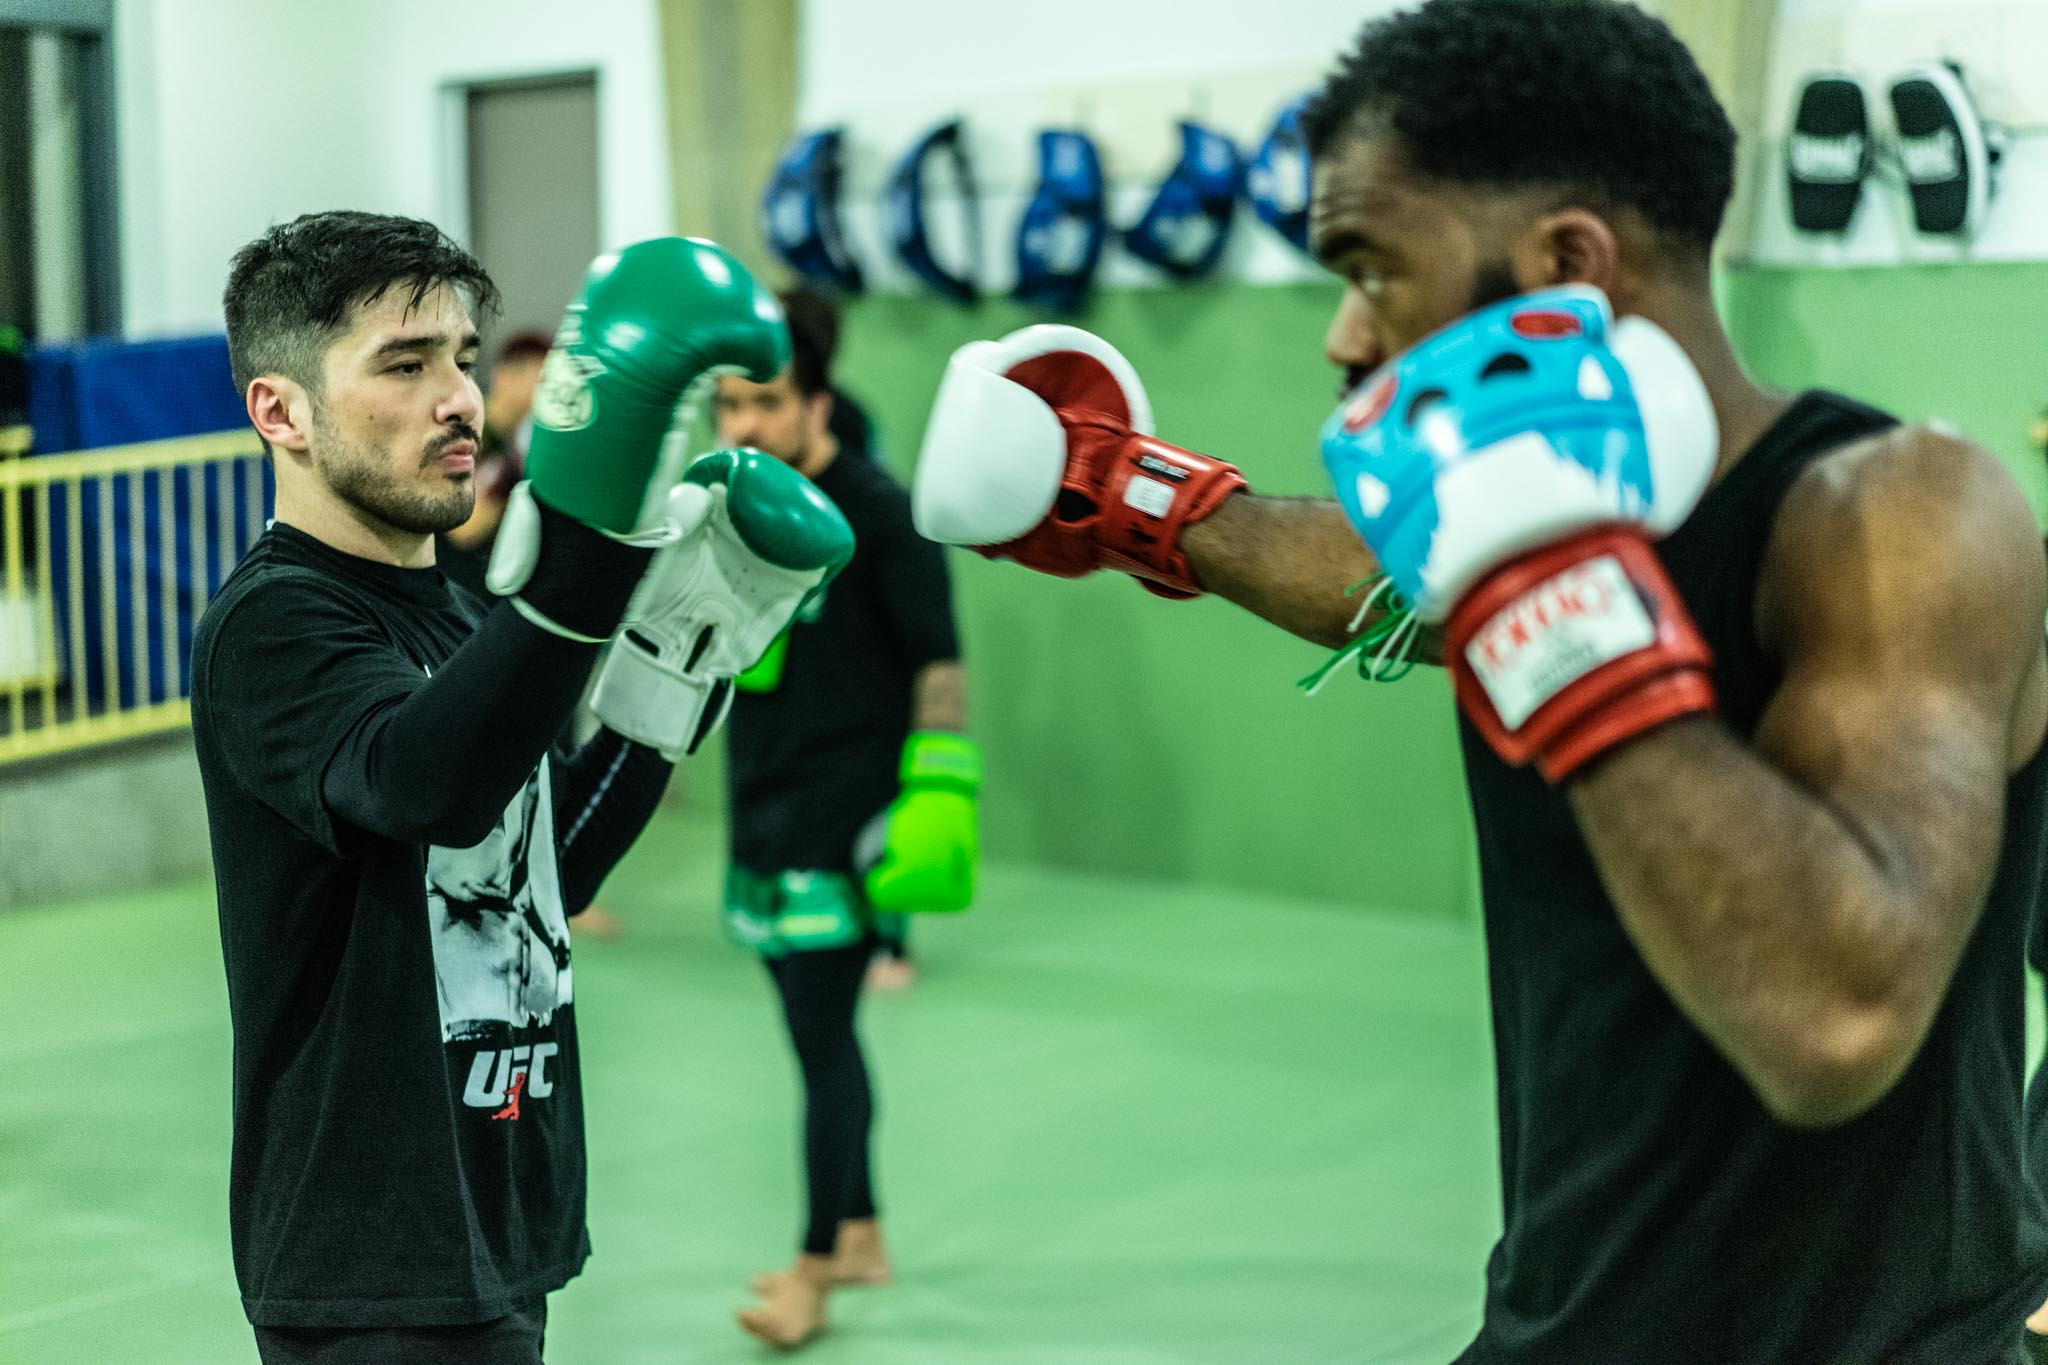 Kickboxing and Muay Thai classes in Arlington Virginia